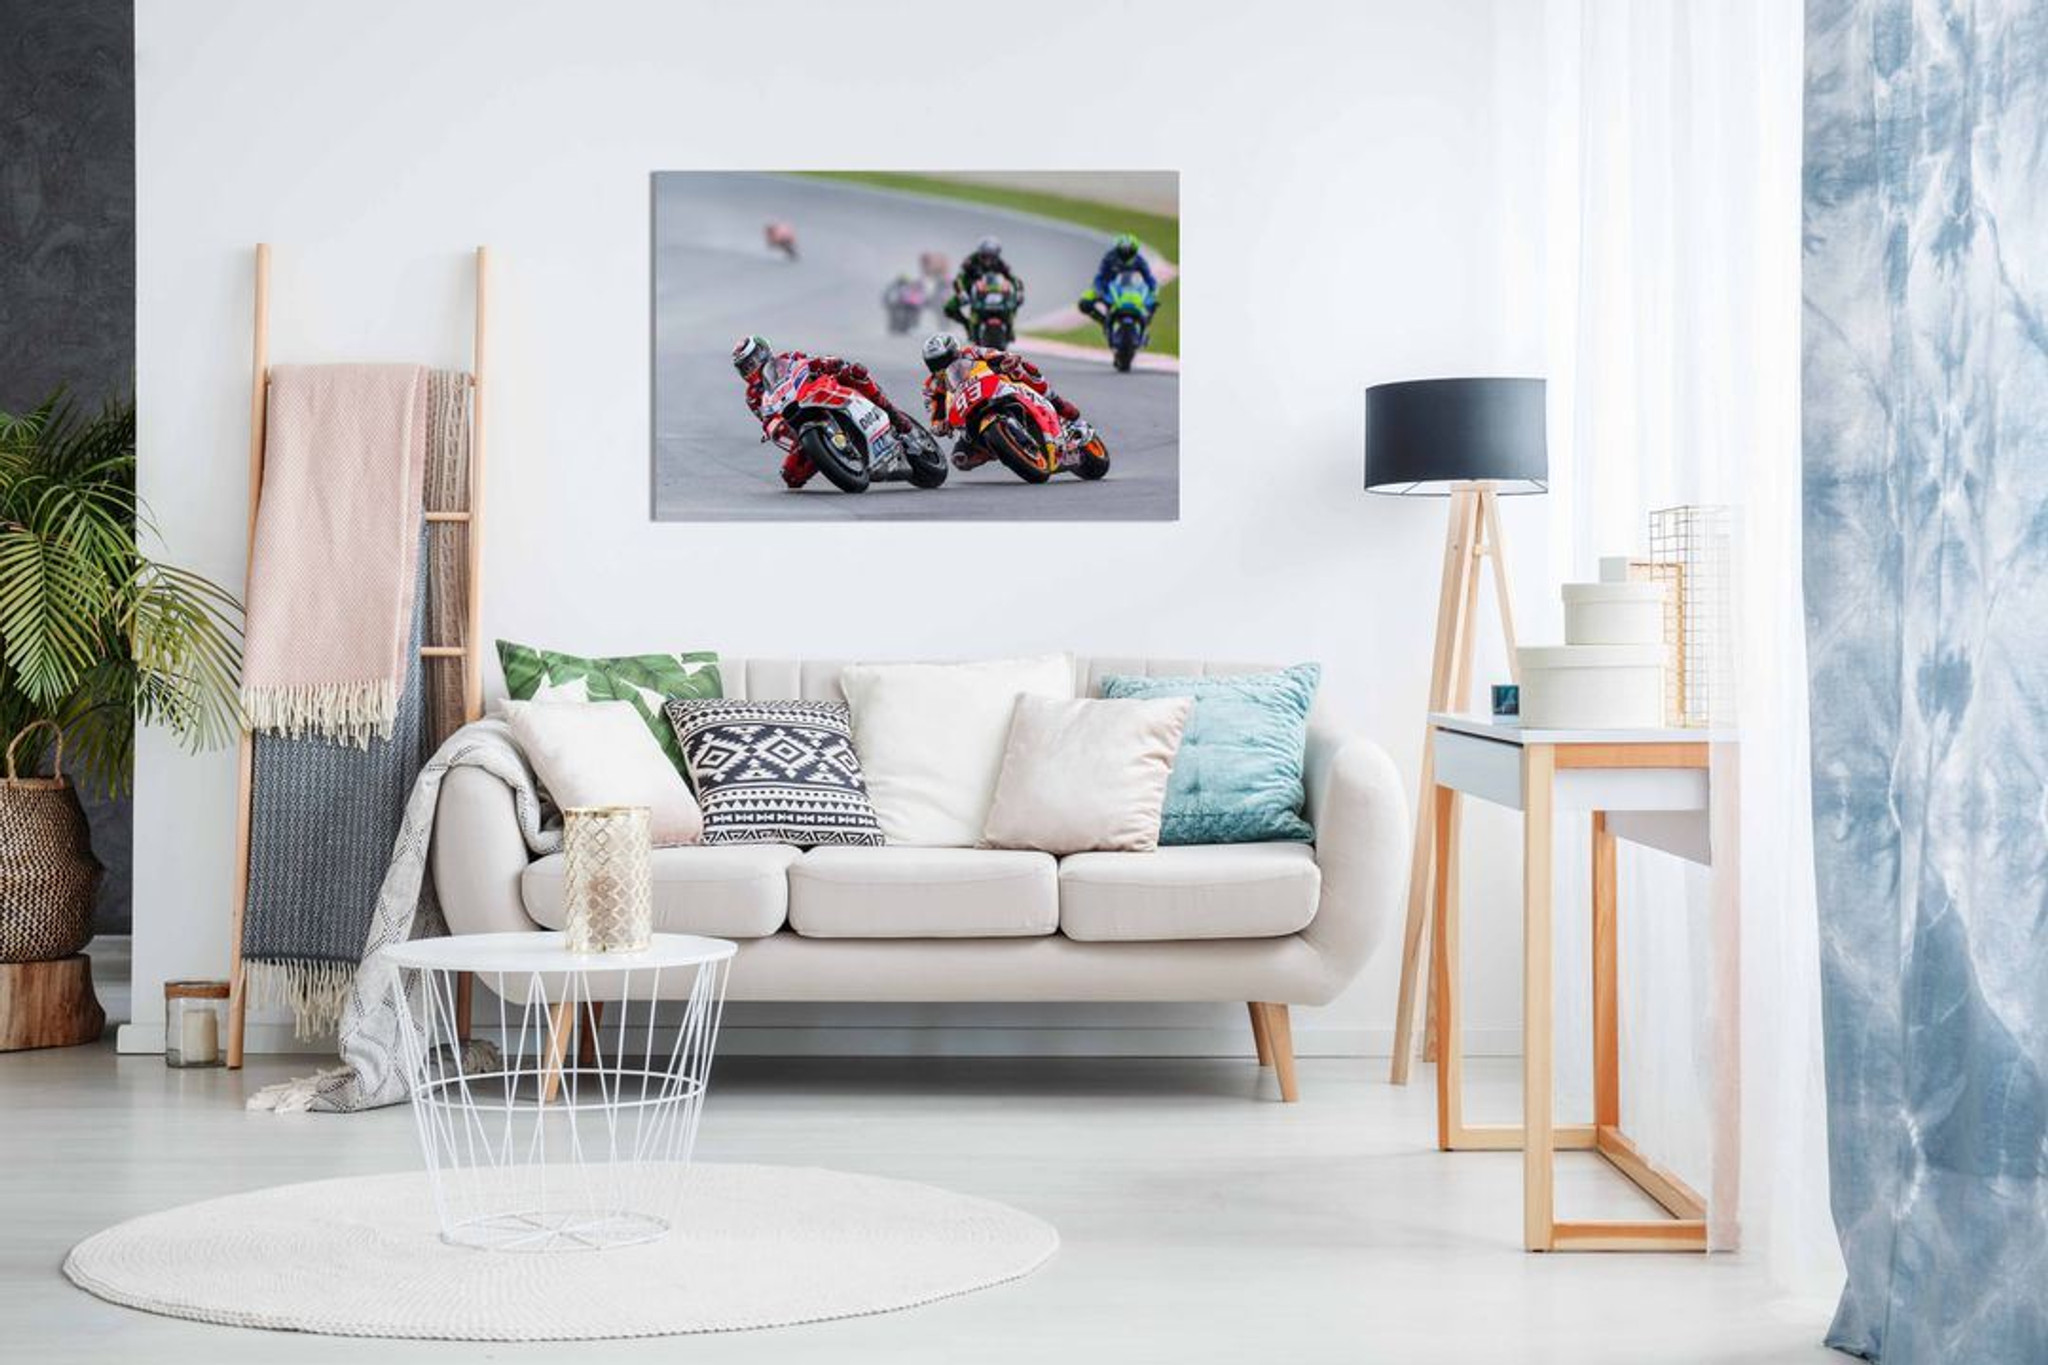 Jorge Lorenzo & Marc Marquez Moto GP Canvas Wall Art Picture Print Home Decor